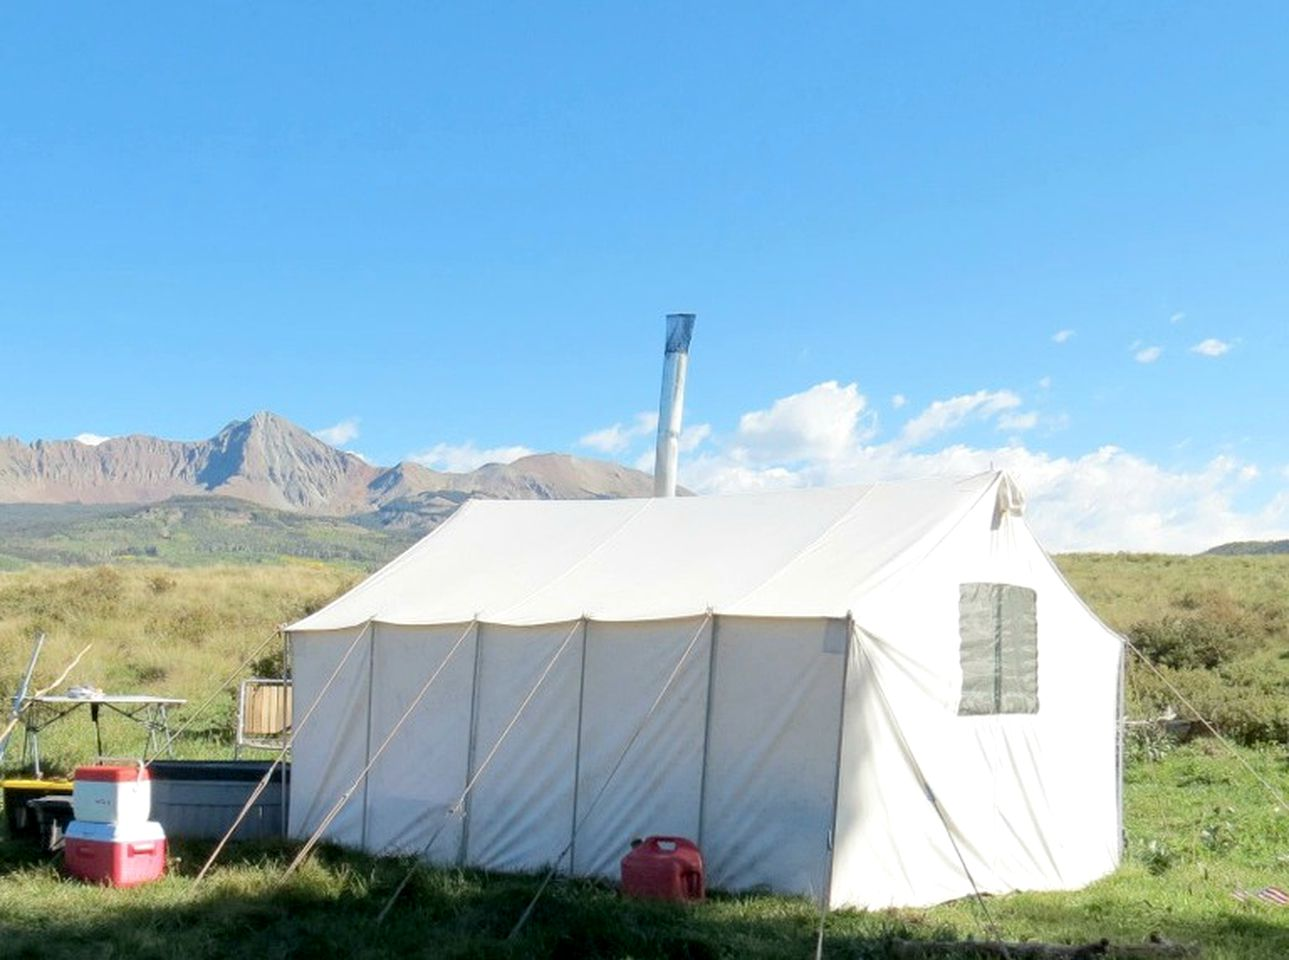 Tents (Denver, Colorado, United States)